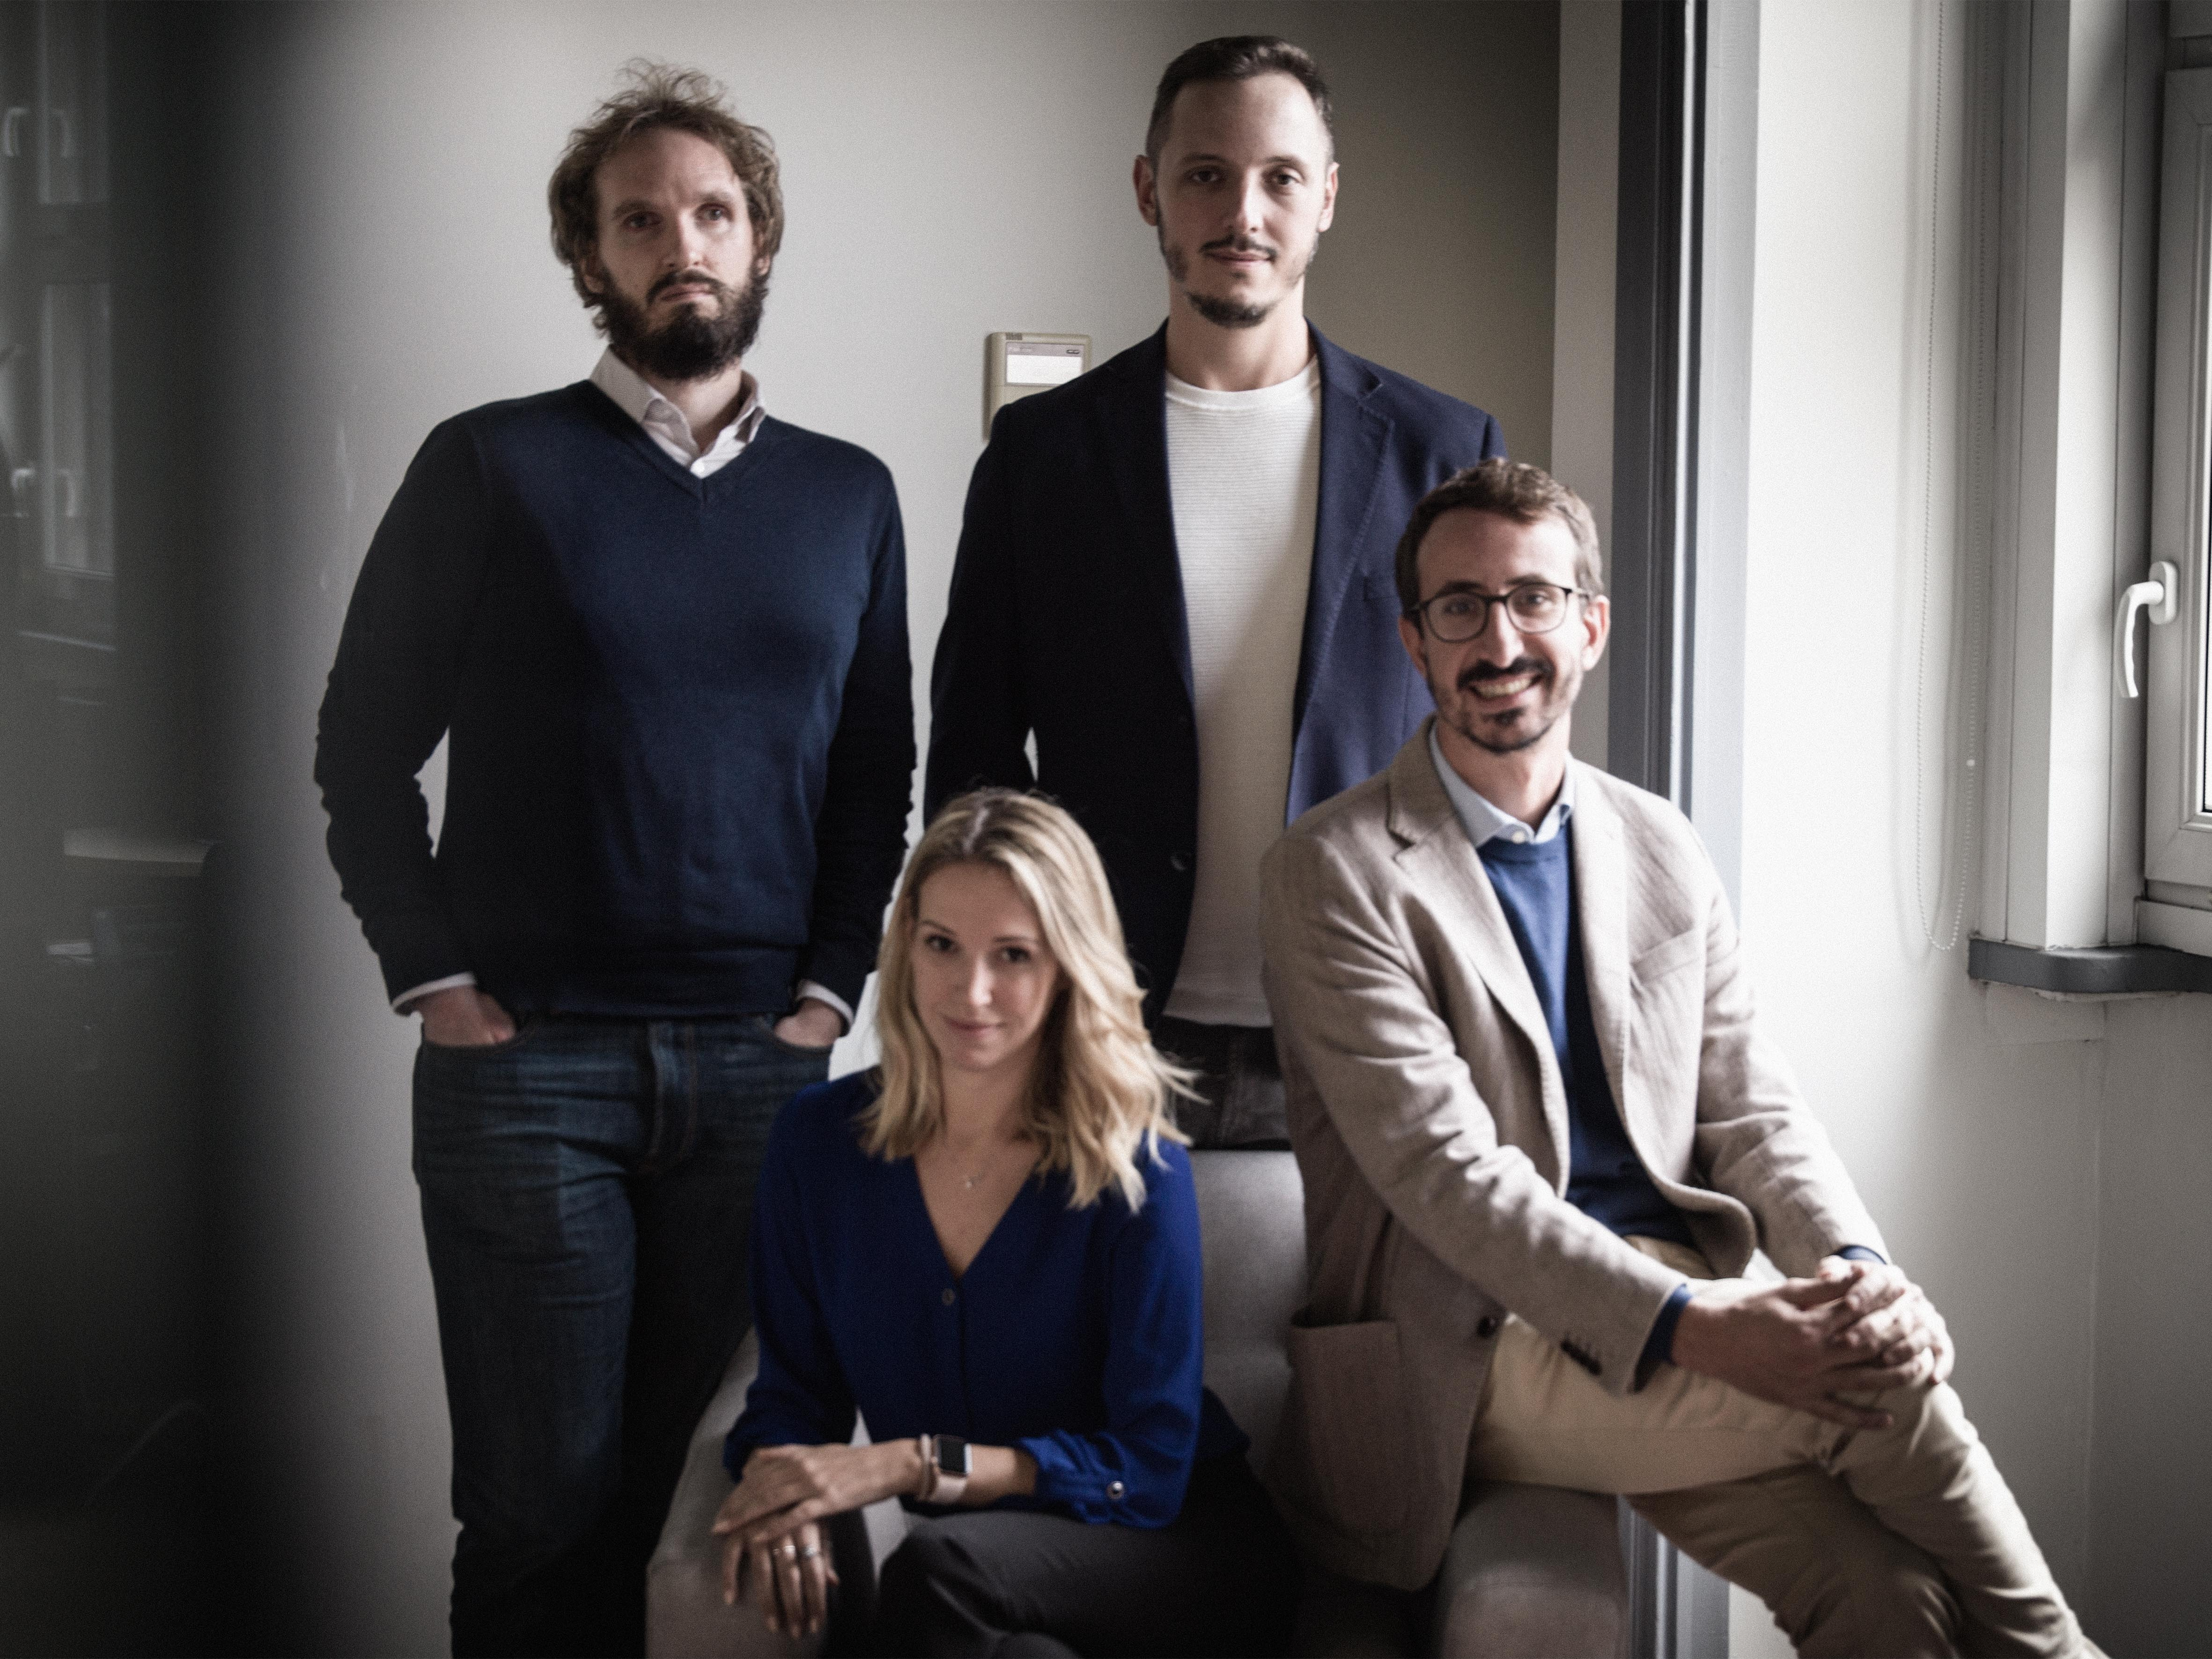 Italy's Banca Progetto invests €1.5 million in instant loan platform Faire.ai (Italian) [credit automation using open banking and AI]...